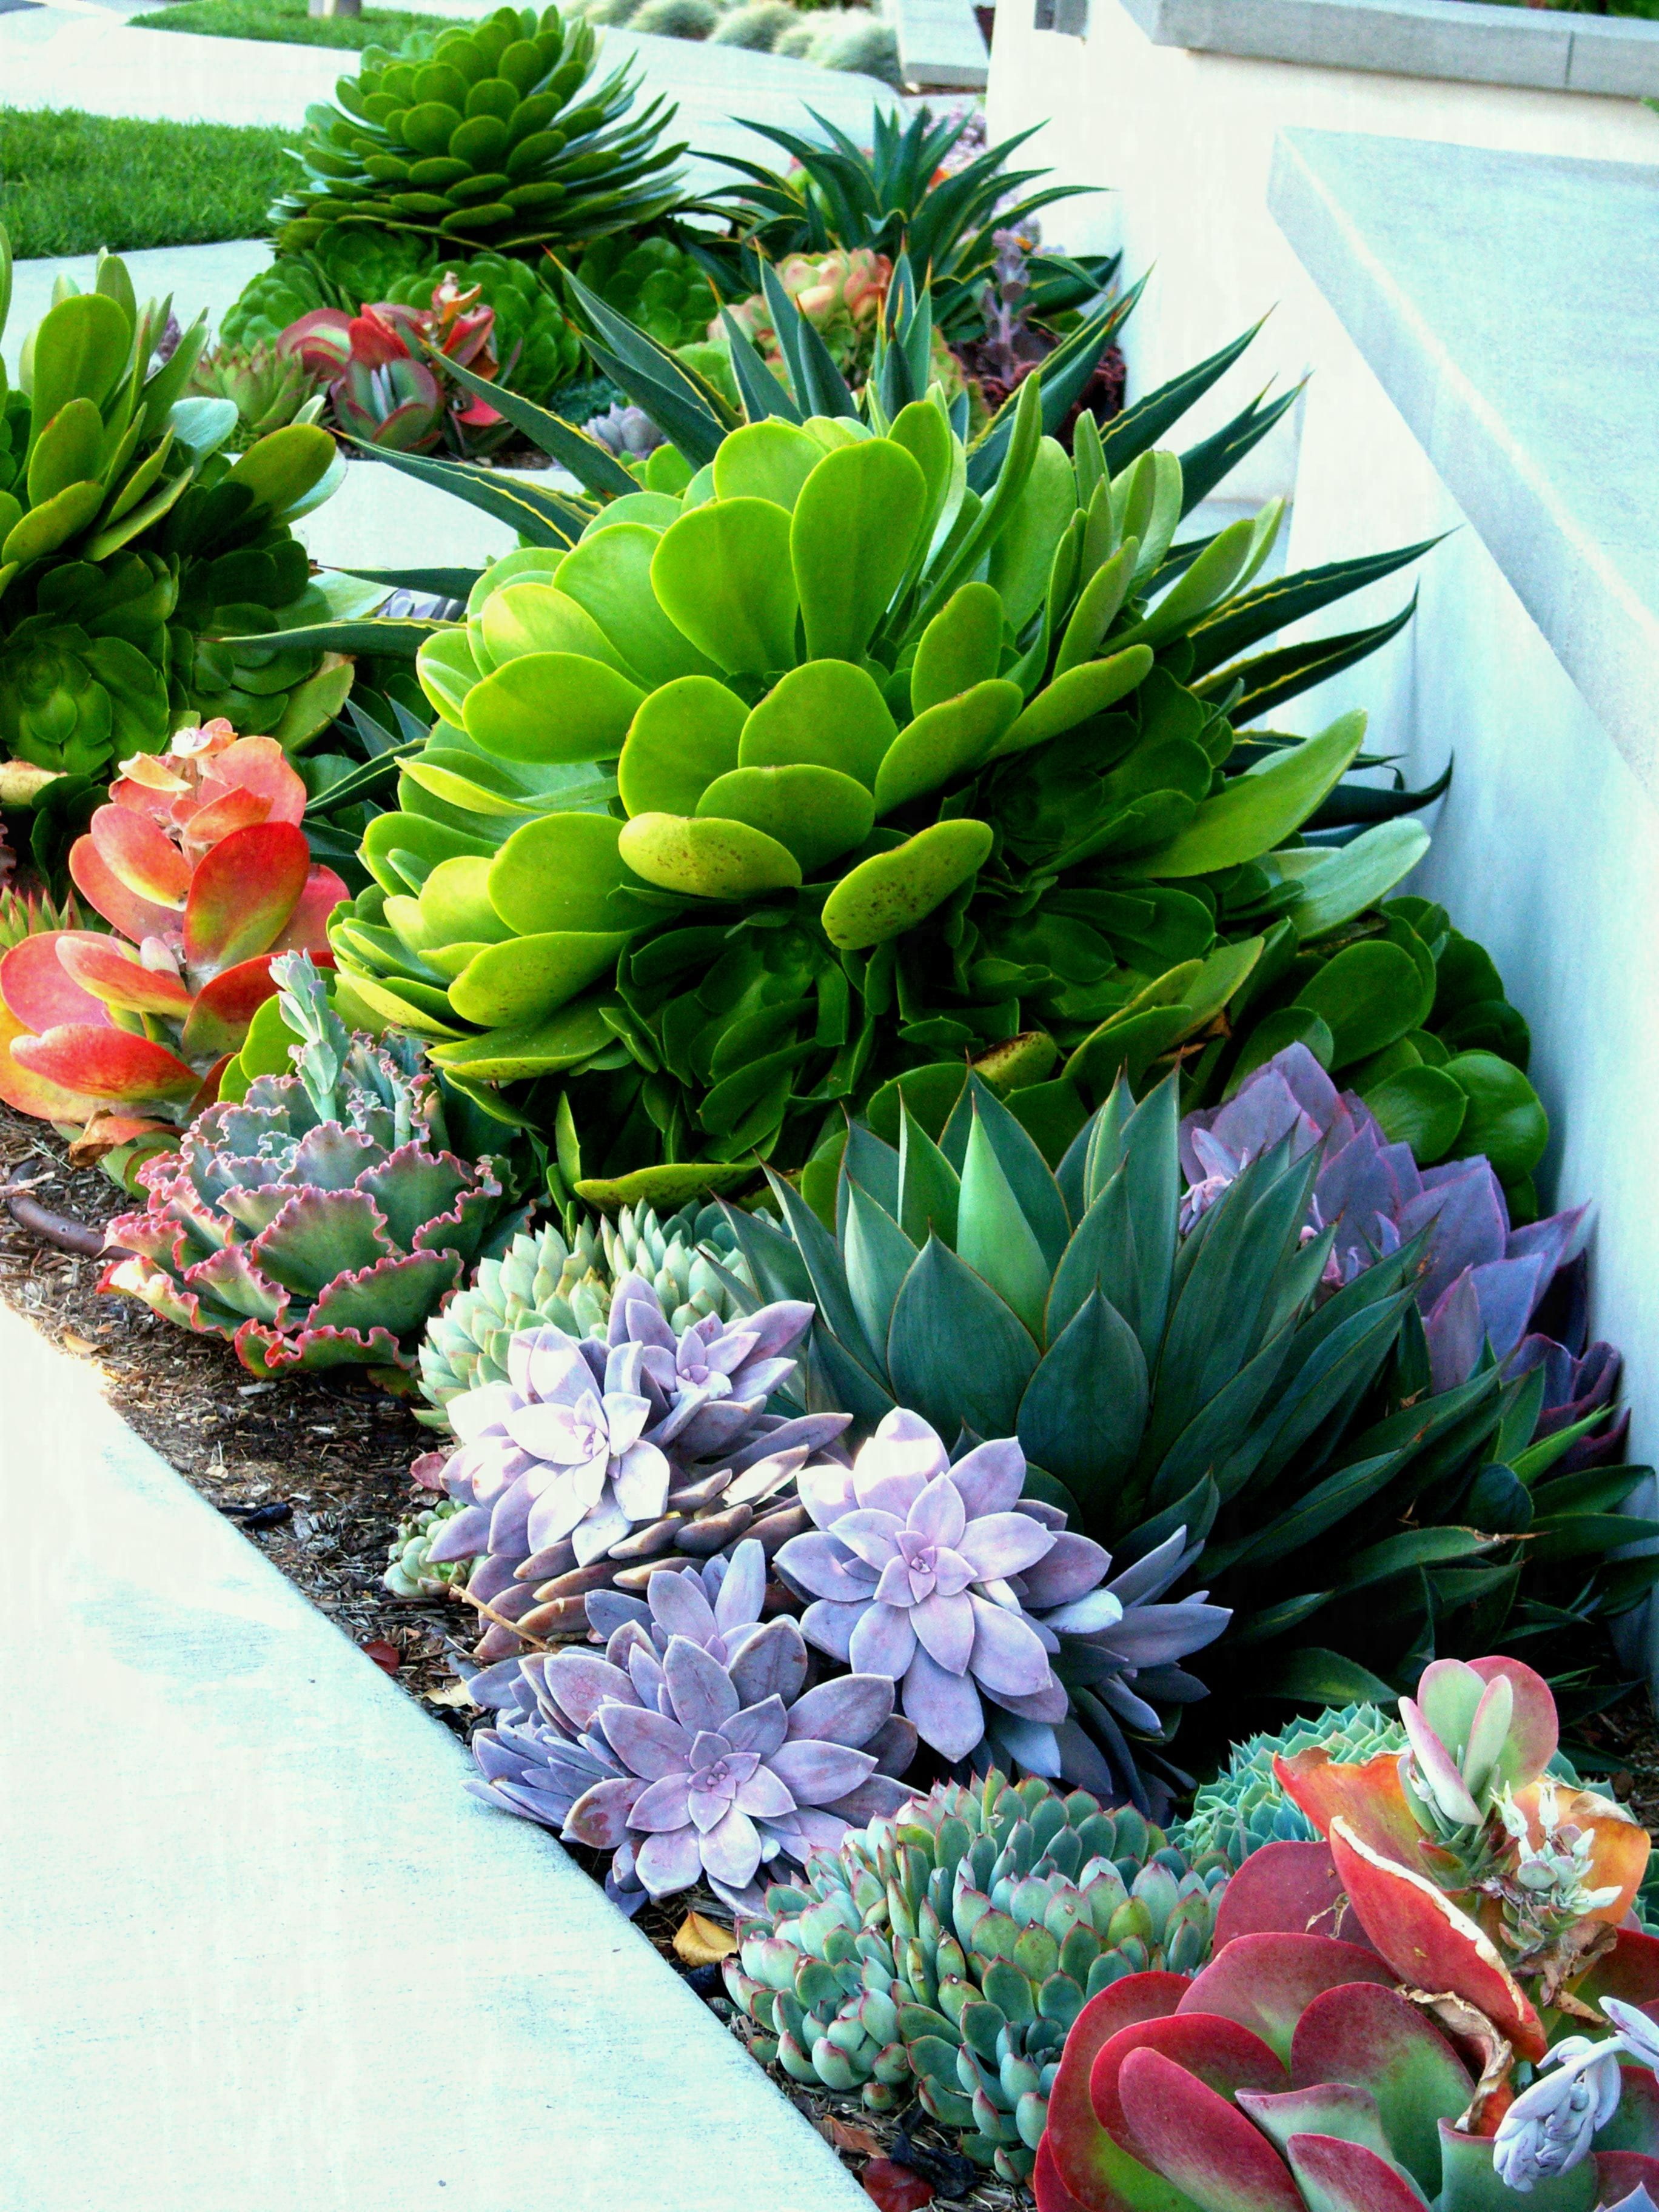 Succulent Landscaping Grassless Front Yard Low Maintenance Find Your Best  Style Of For Backyard Cactus Garden Landscape Ideas House Beadboard Drought  ...